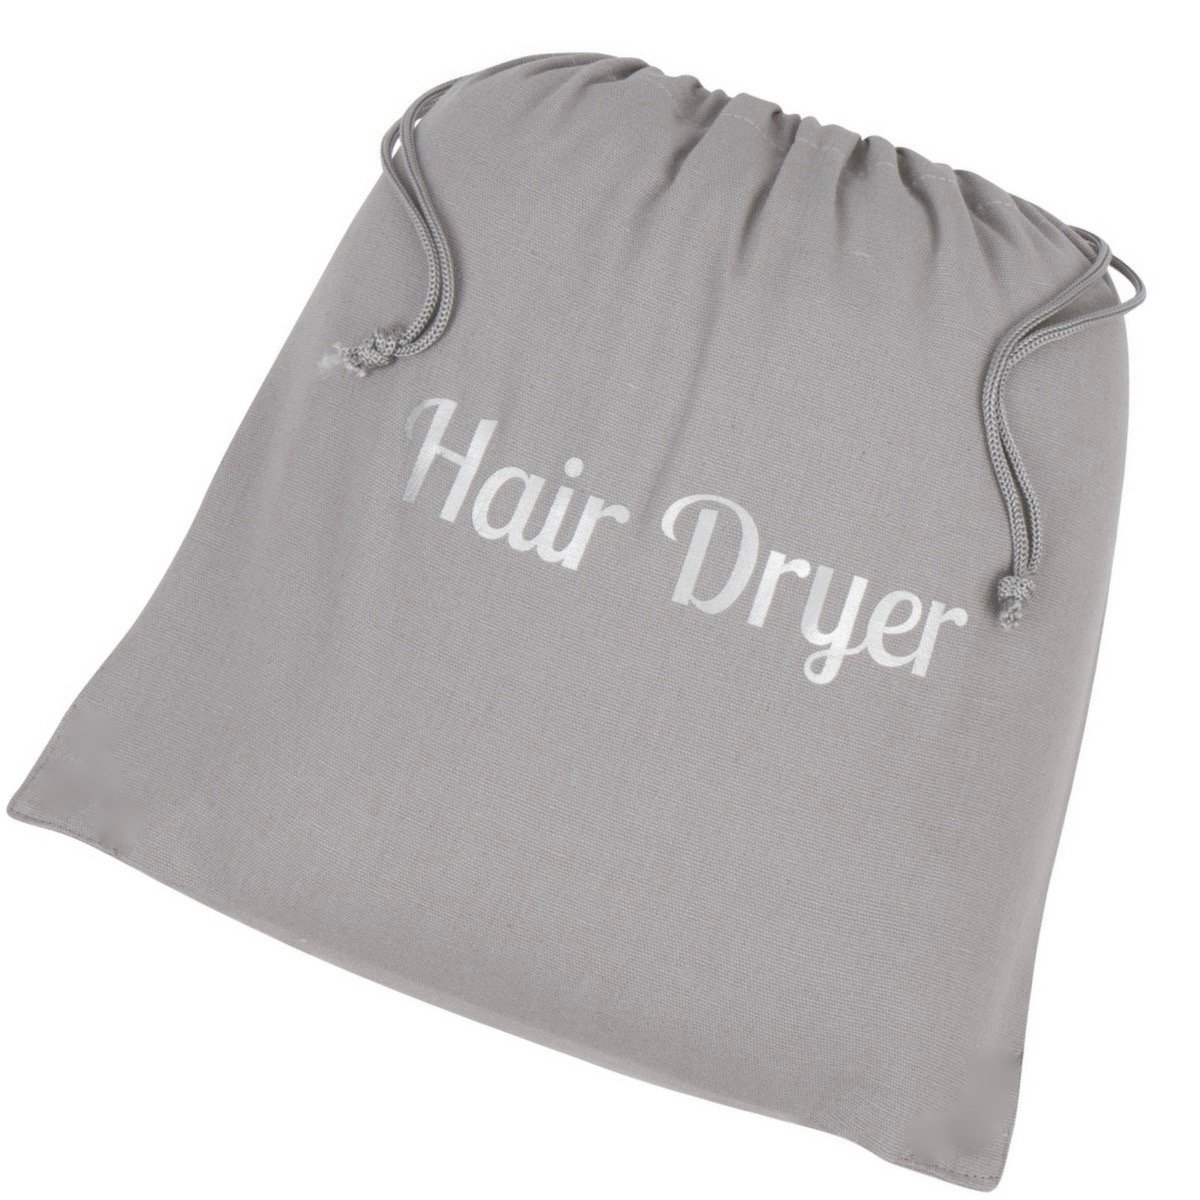 Hair Dryer Bag - Great for Organization and Storage at Home or Travel